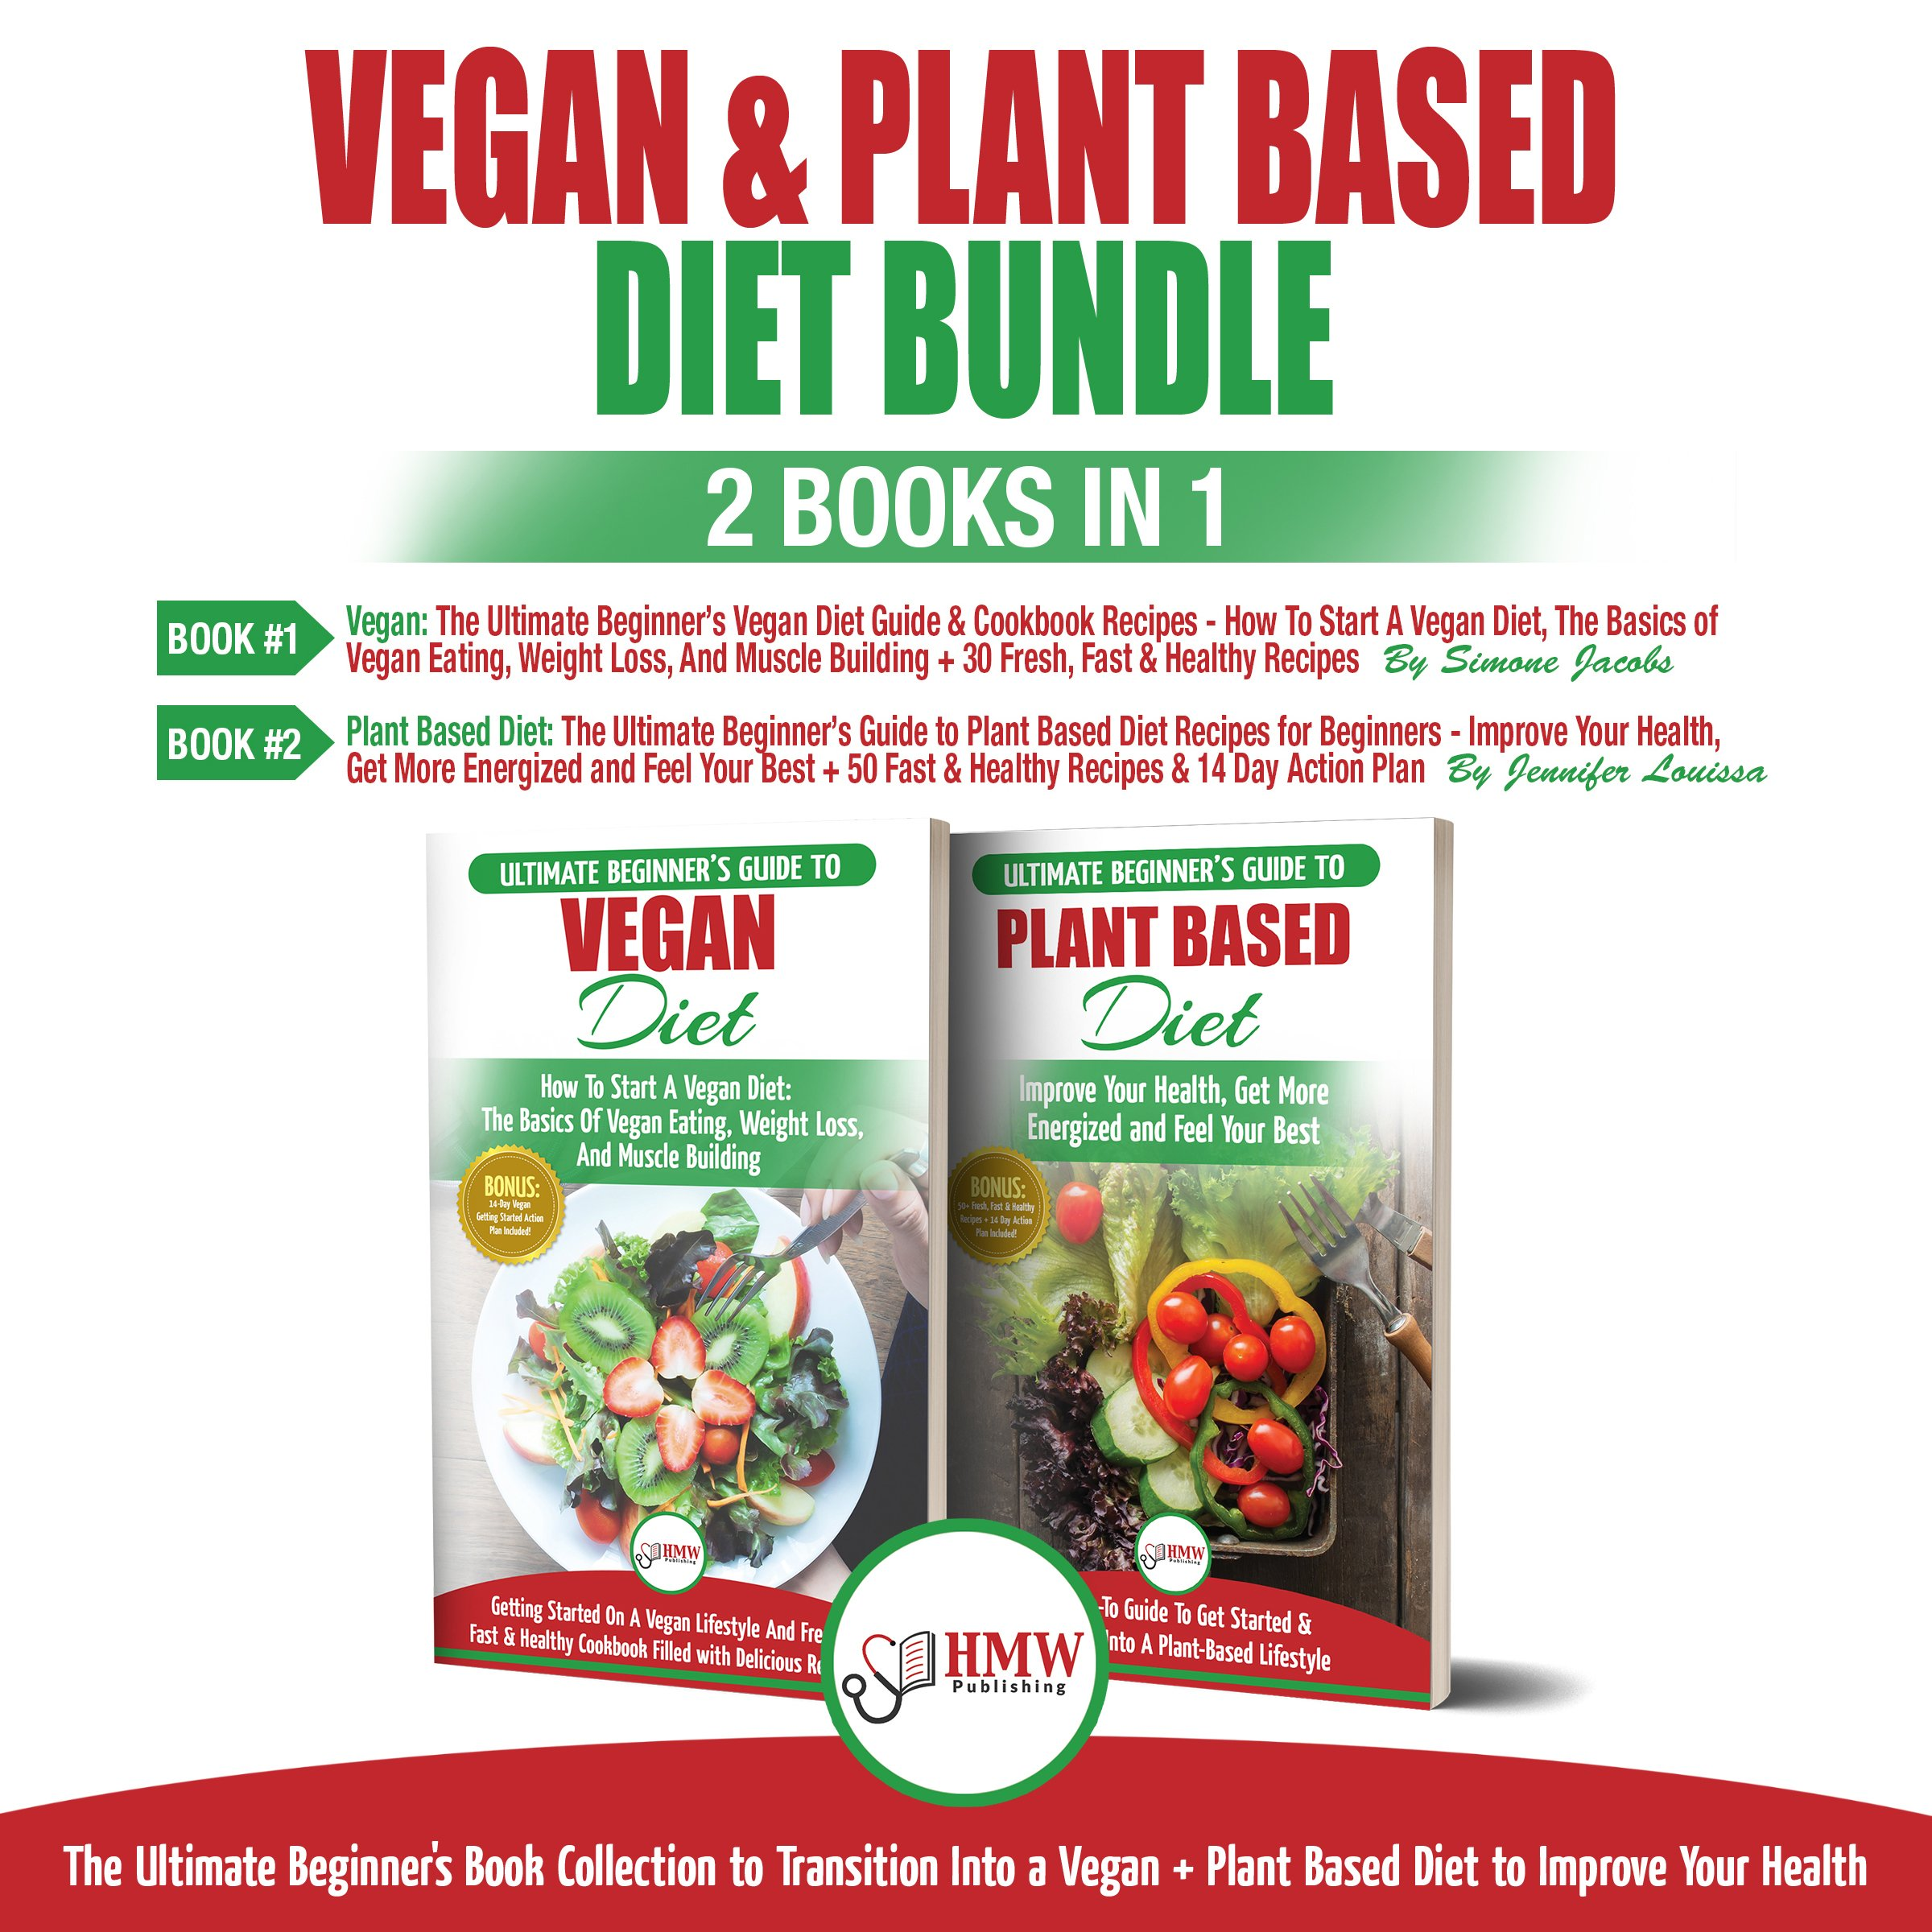 Vegan & Plant Based Diet - 2 Books in 1 Bundle: The Ultimate Beginner's Book Collection to Transition Into a Vegan + Plant Based Diet to Improve Your Health